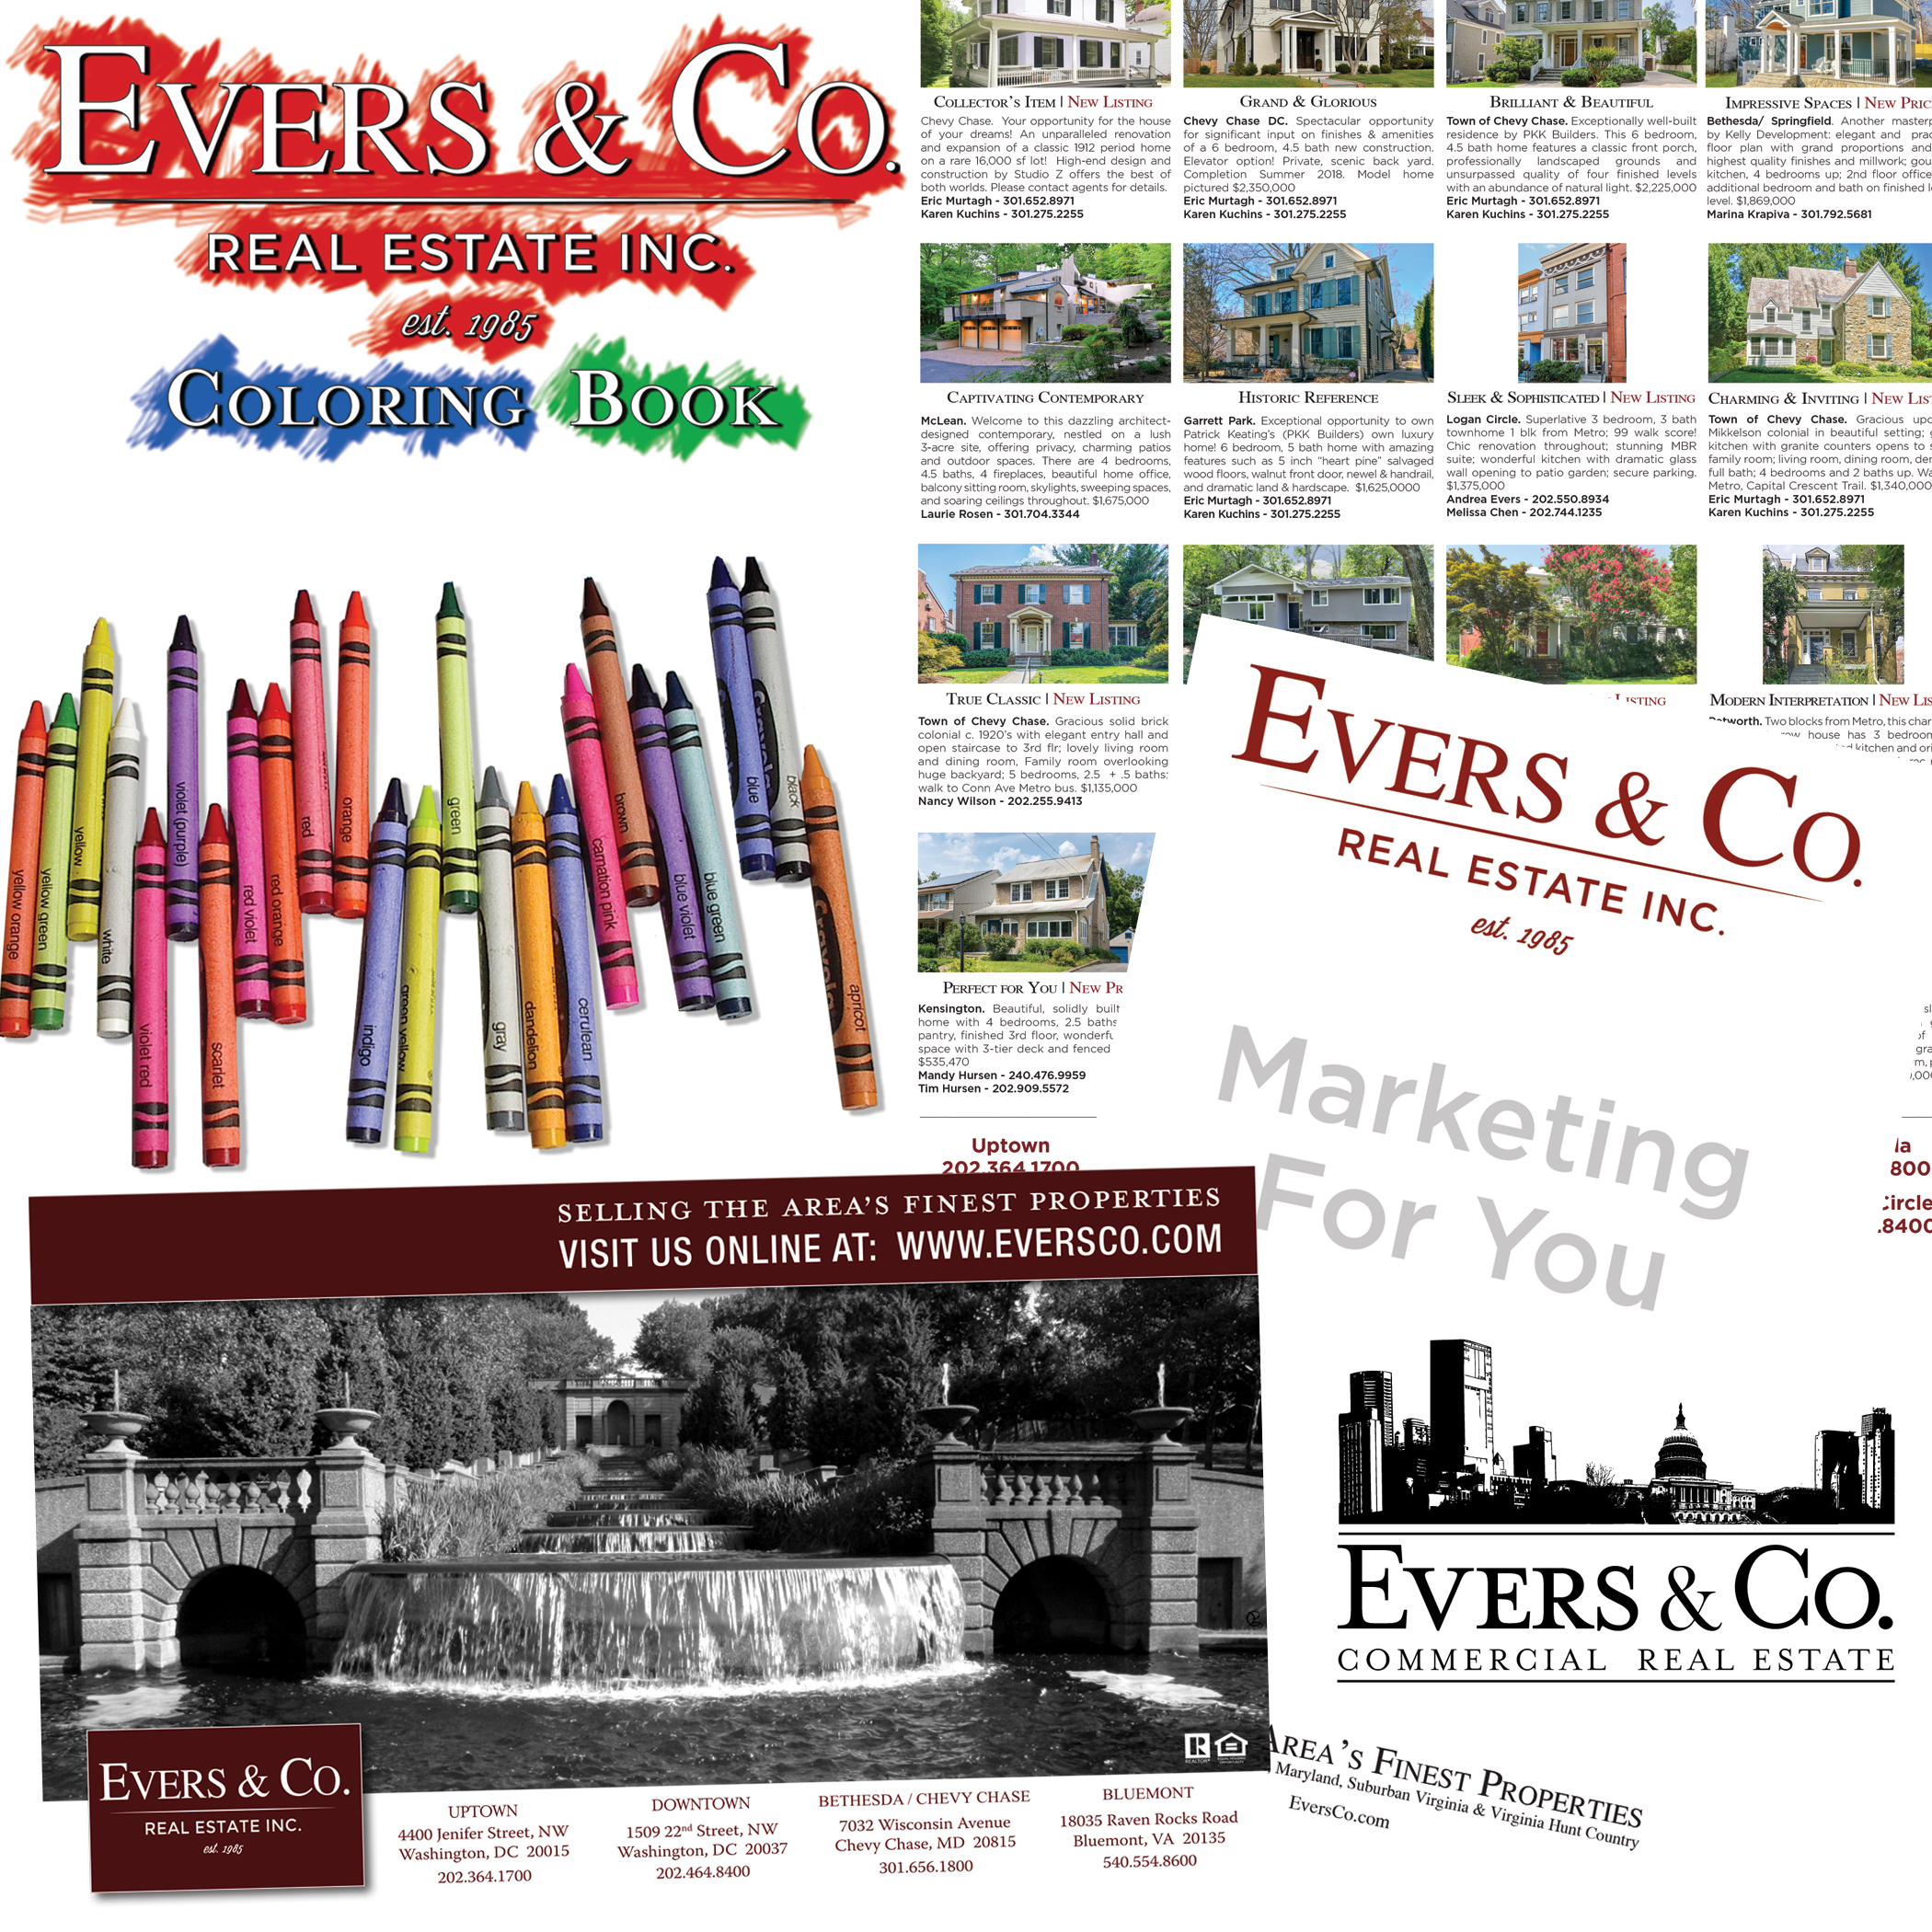 Evers & Co. Real Estate, Inc. - Top Real Estate Brokerage ~ Design Study